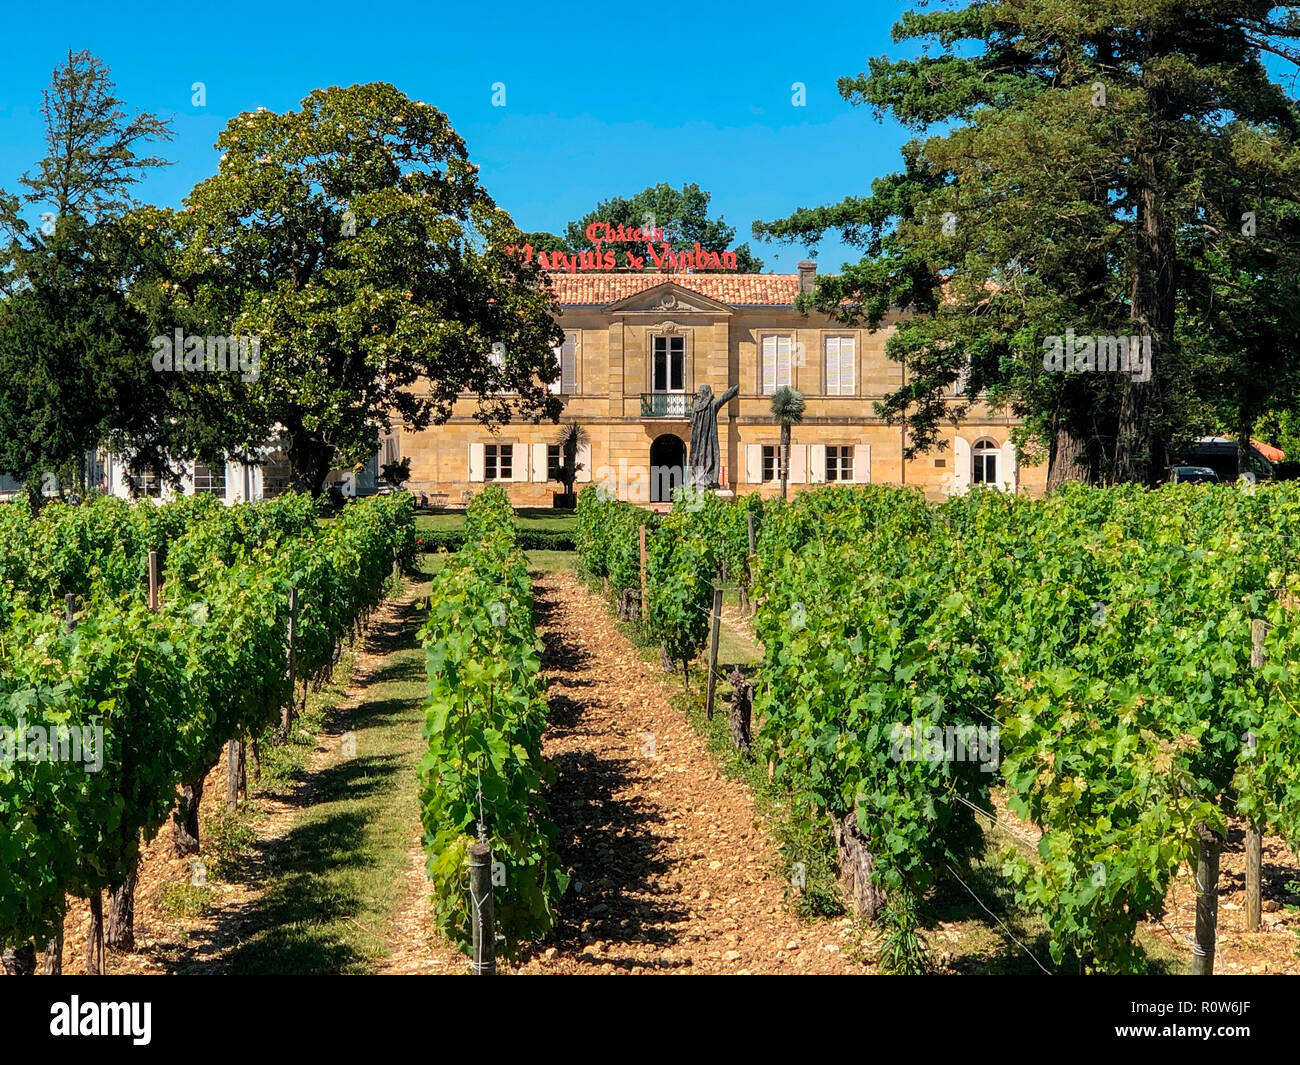 Vineyards at Chateau Marquis de Vaban near the town of Blaye in Nouvelle-Aquitaine region of southwest France. Stock Photo